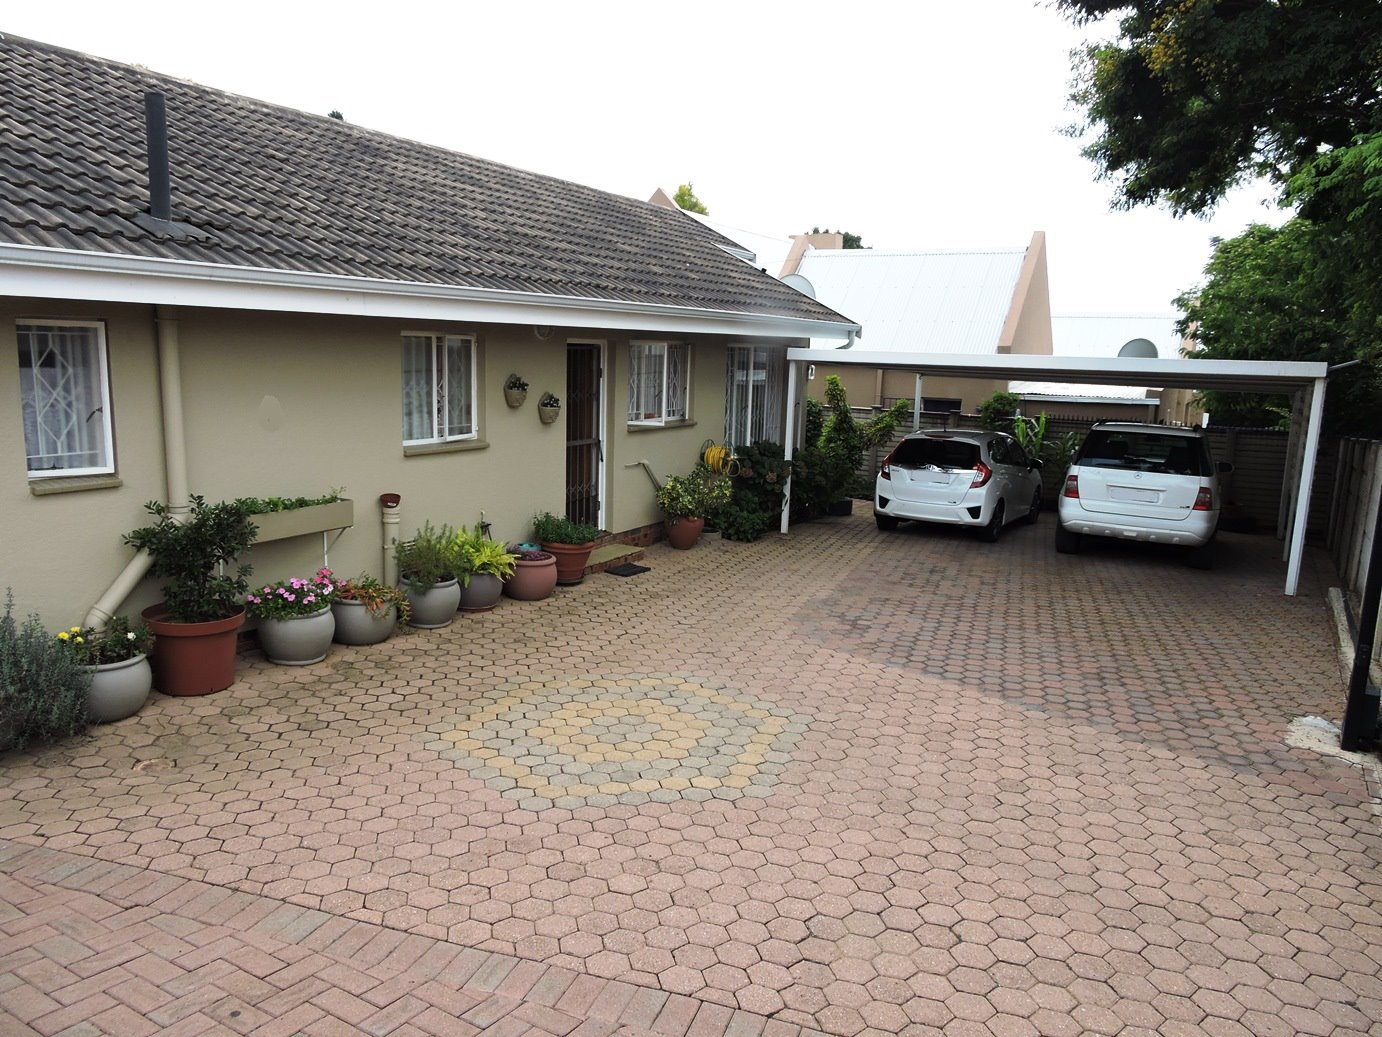 Property and Houses for sale in Bloubosrand, House, 5 Bedrooms - ZAR 1,485,000